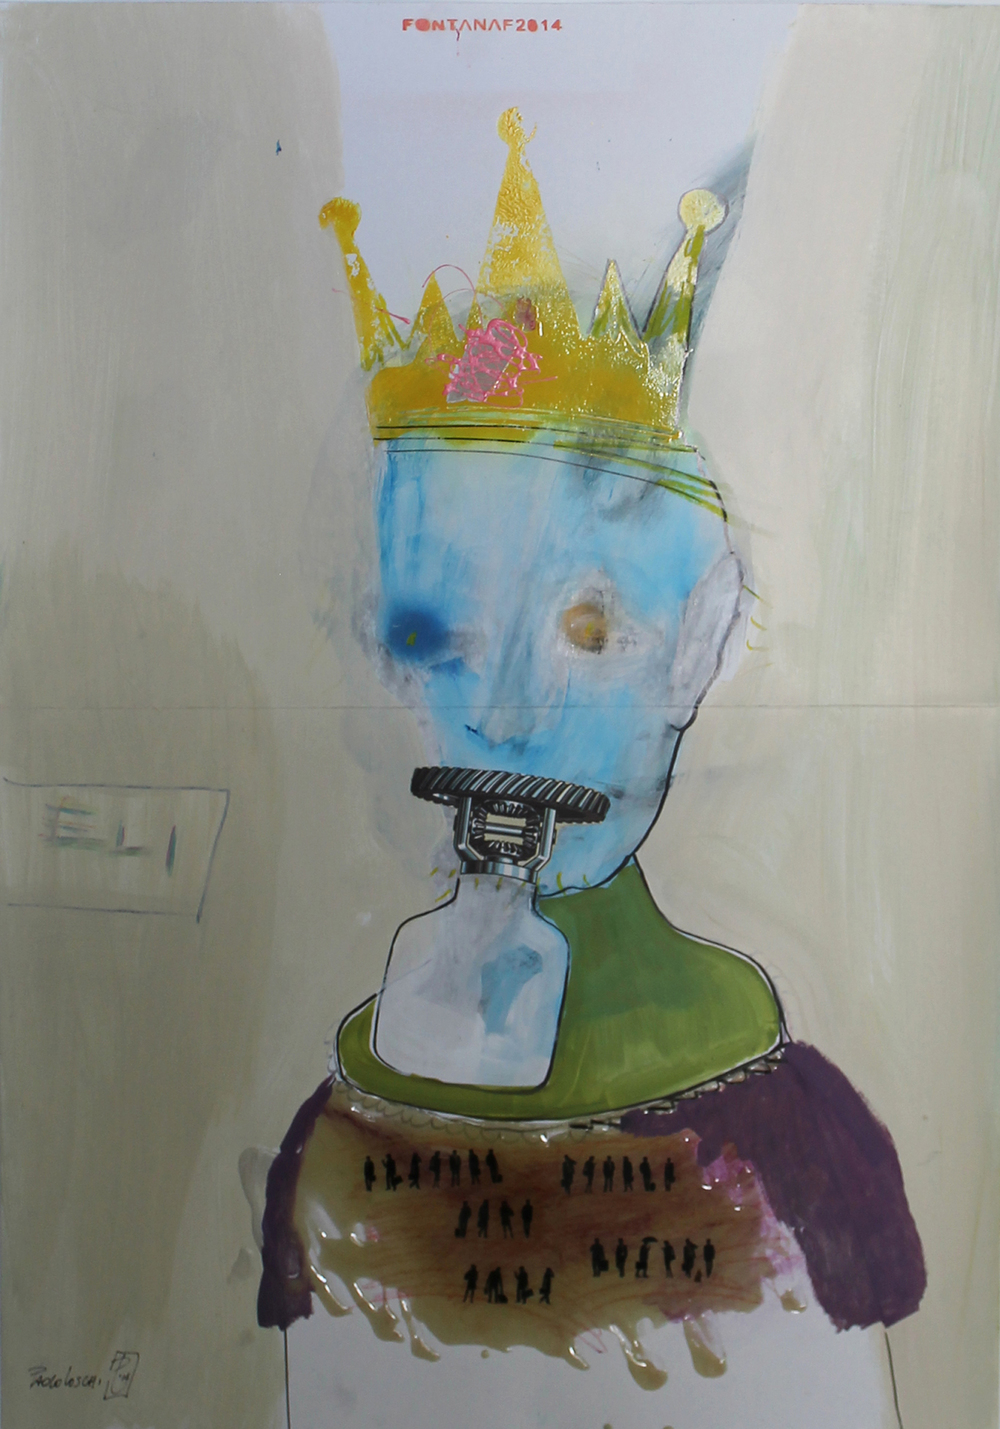 ELI  MIXED MEDIA ON PAPER - 70x100cm 2014